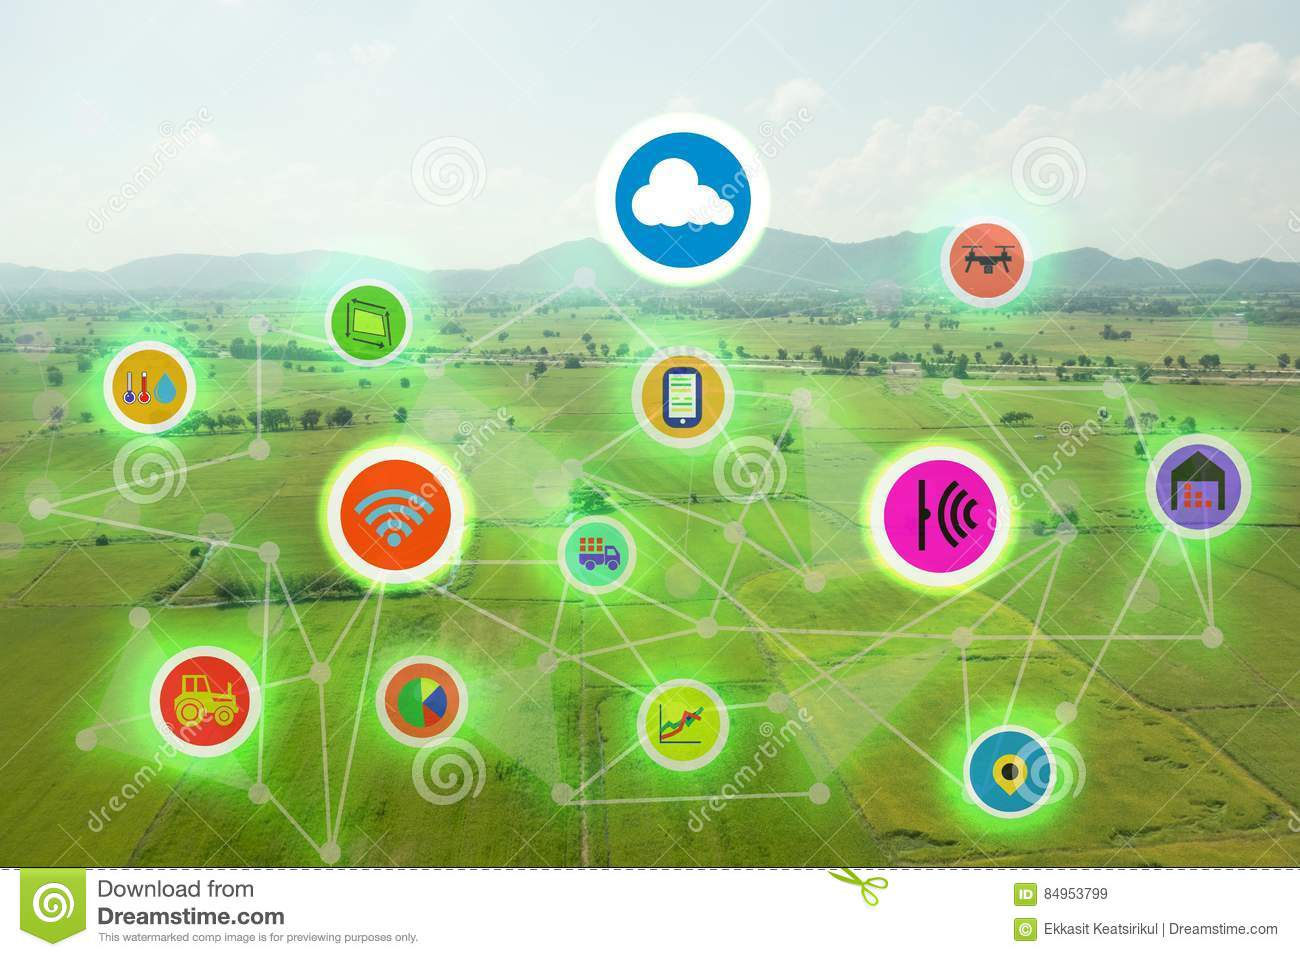 Internet of things industrial agriculture,smart farming concepts,the various farm technology in the futuristic icom on the field b